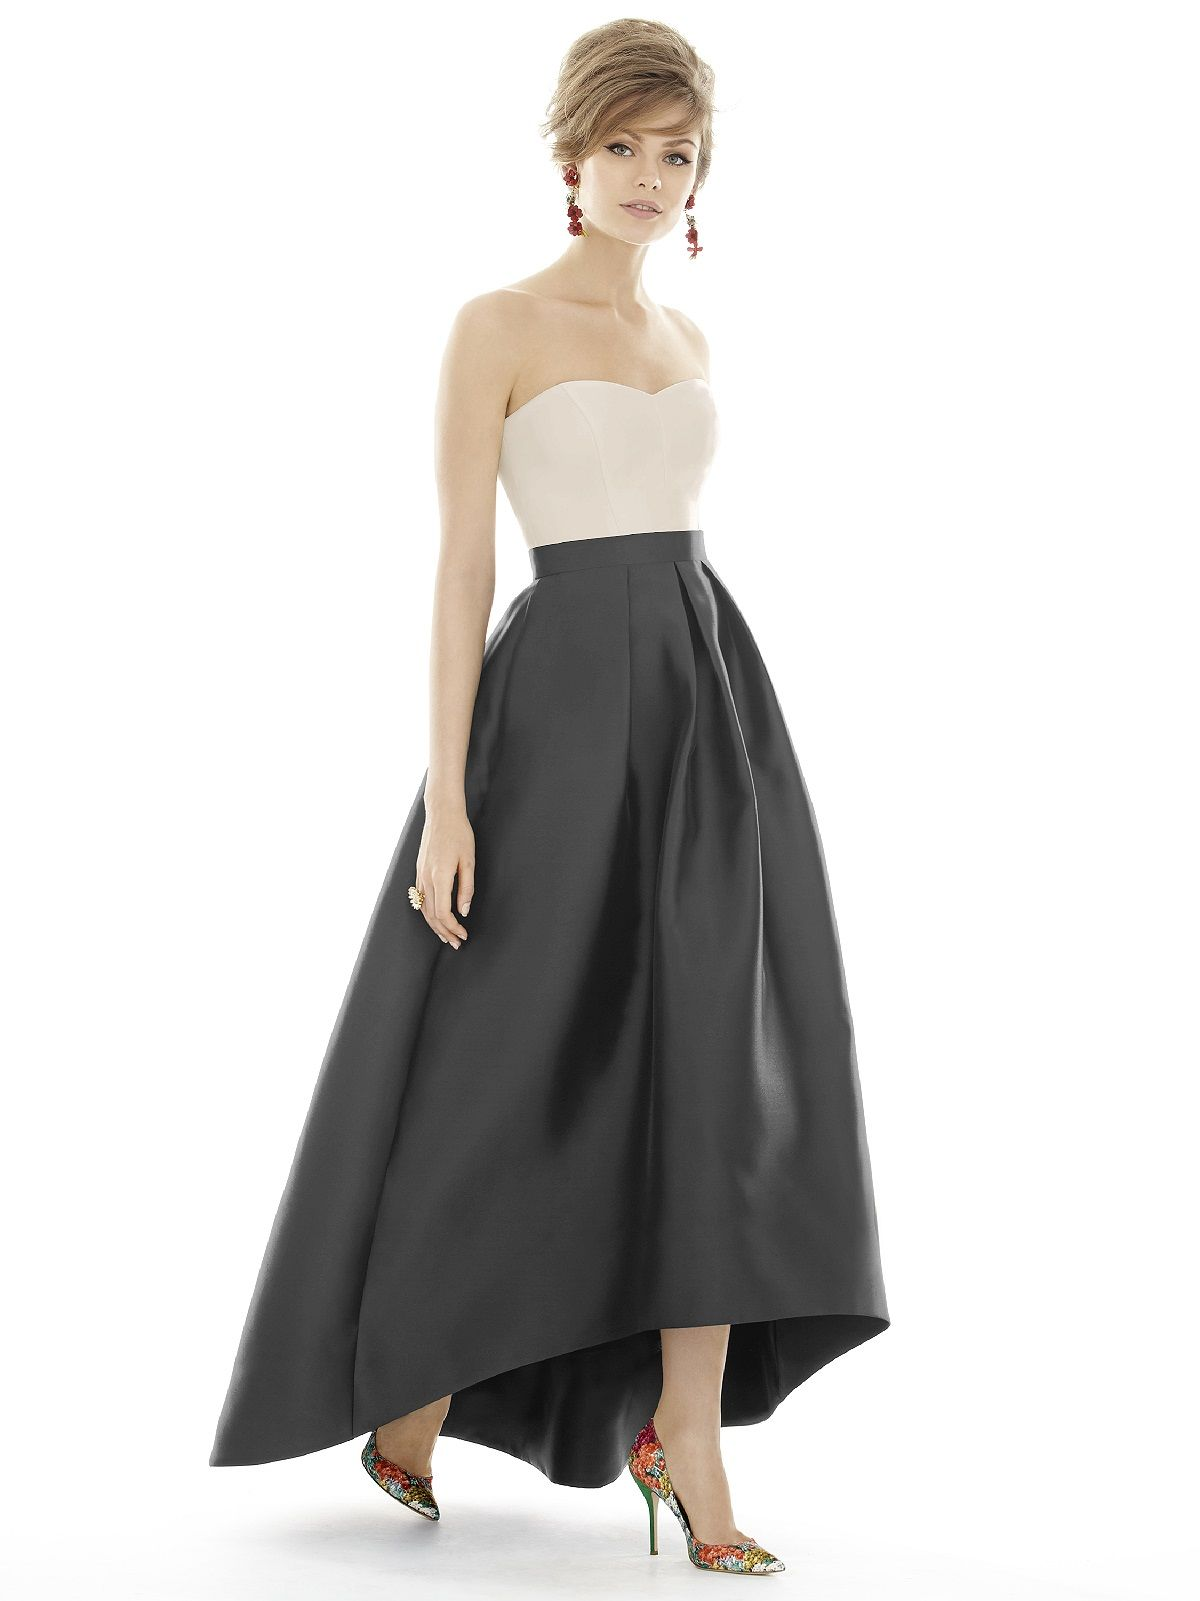 Tailored in sateen twill the dessy alfred sung d699 bridesmaid tailored in sateen twill the dessy alfred sung d699 bridesmaid dress offers a flattering a ombrellifo Gallery